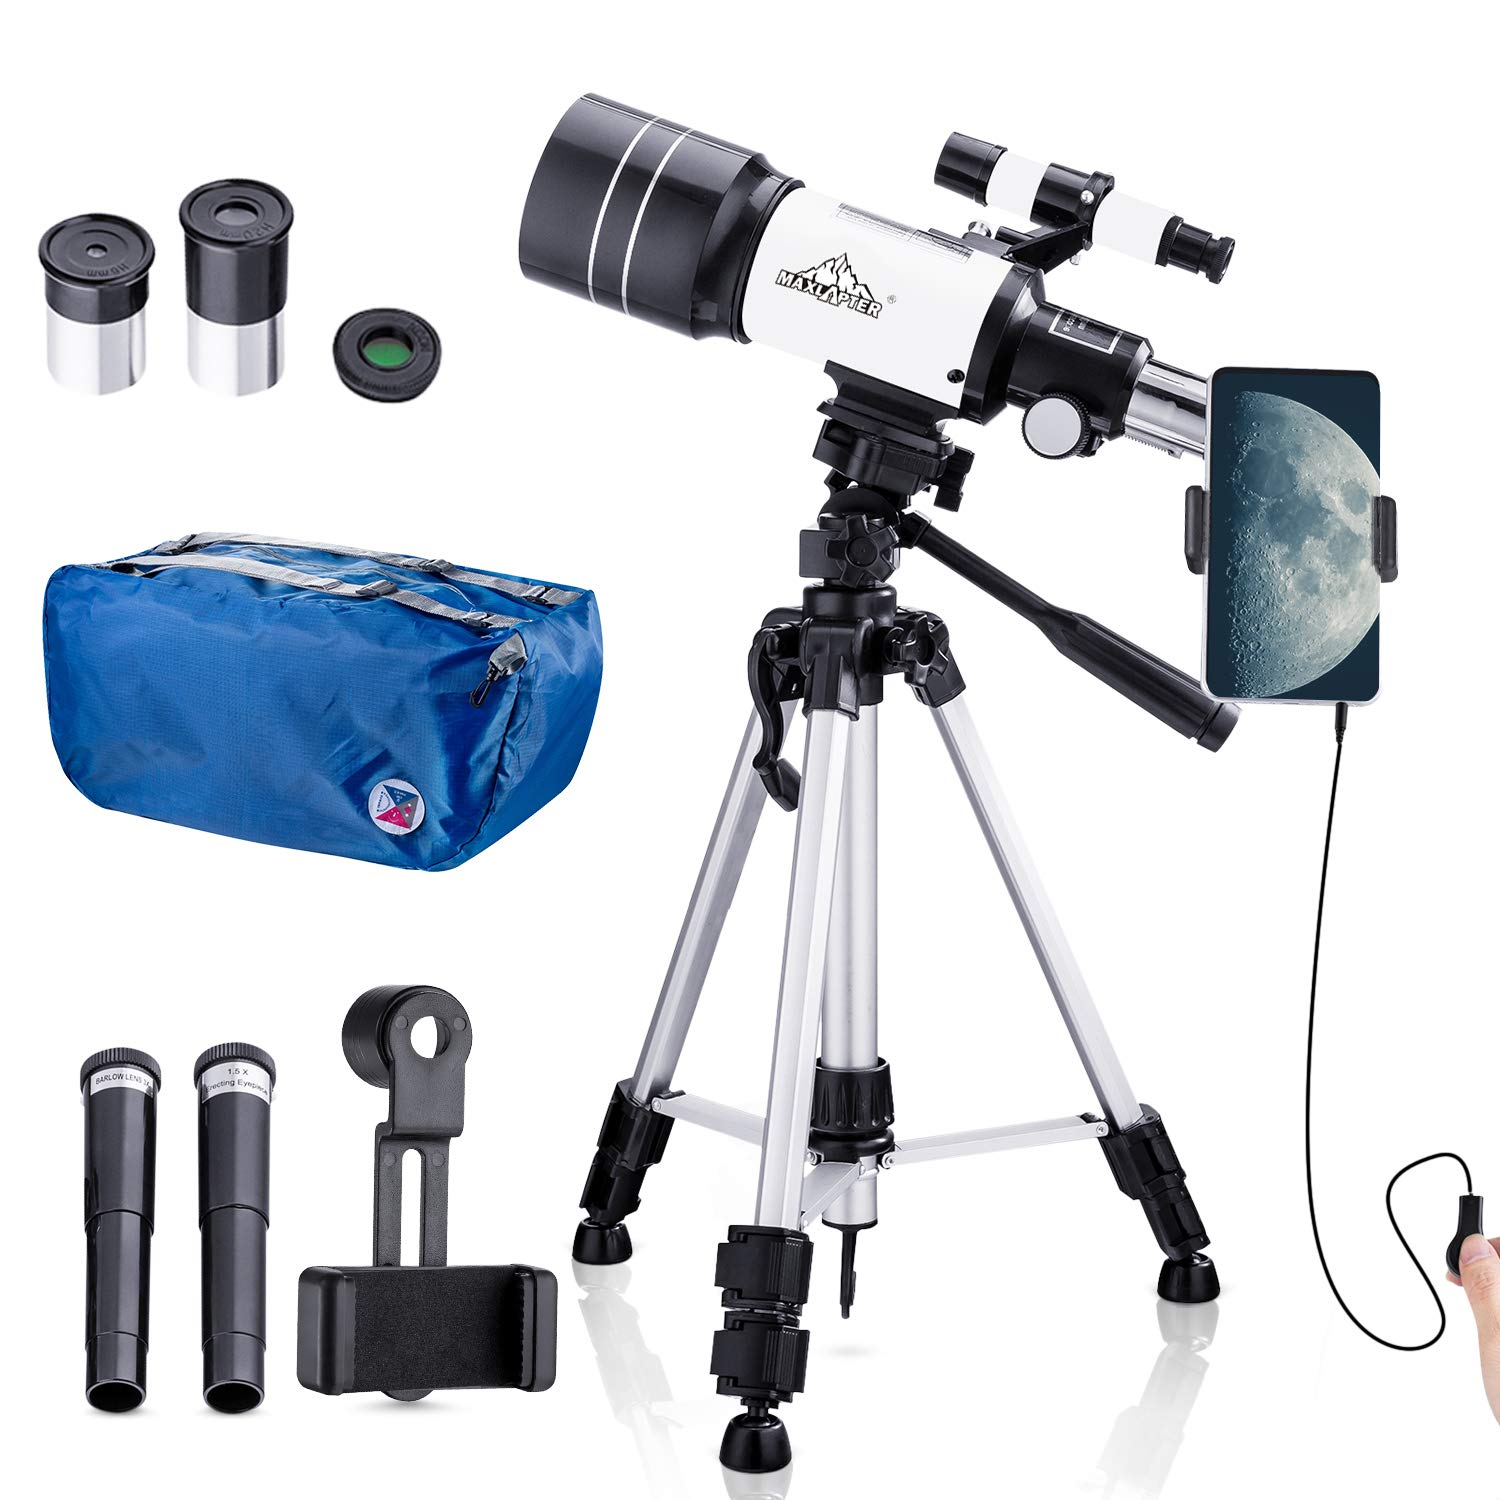 Telescope for Kids Beginners,150X Astronomy Monocular Telescopes 300/70mm with Phone Adapter, Camera Wire Shutter, Moon Filter and Backpack- Adjustable Tall Tripod by MAXLAPTER